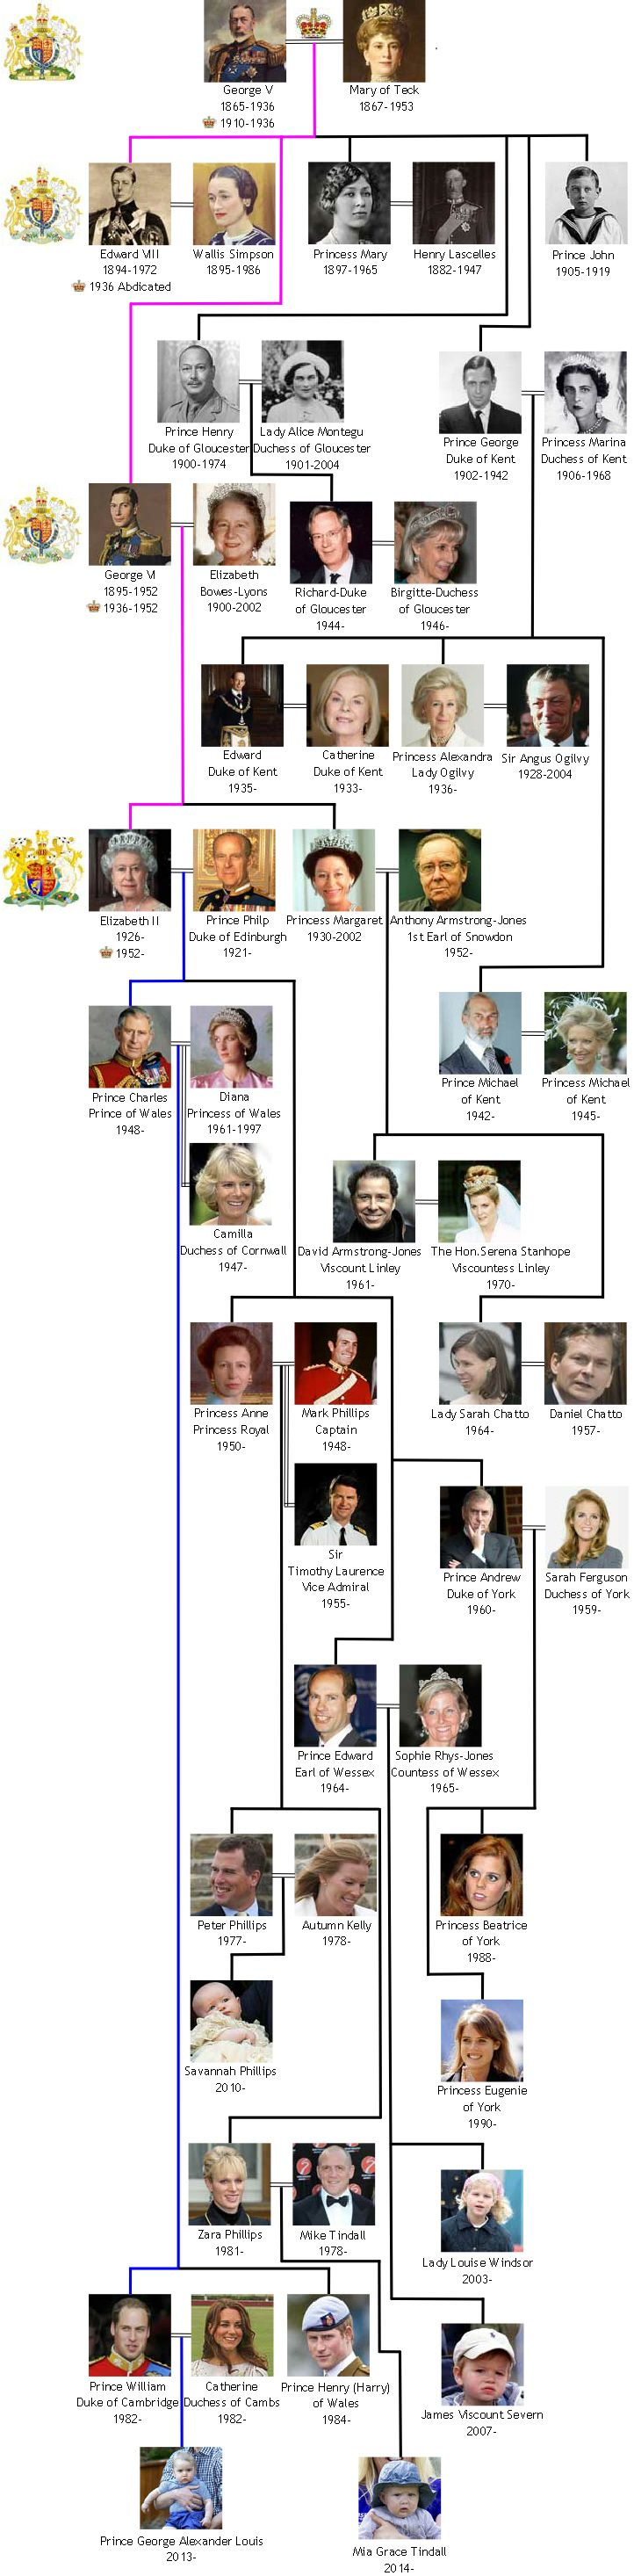 The Royal House of Windsor is the present royal dynasty in Great Britain. Search the family tree and detailed descriptions of the royal family members